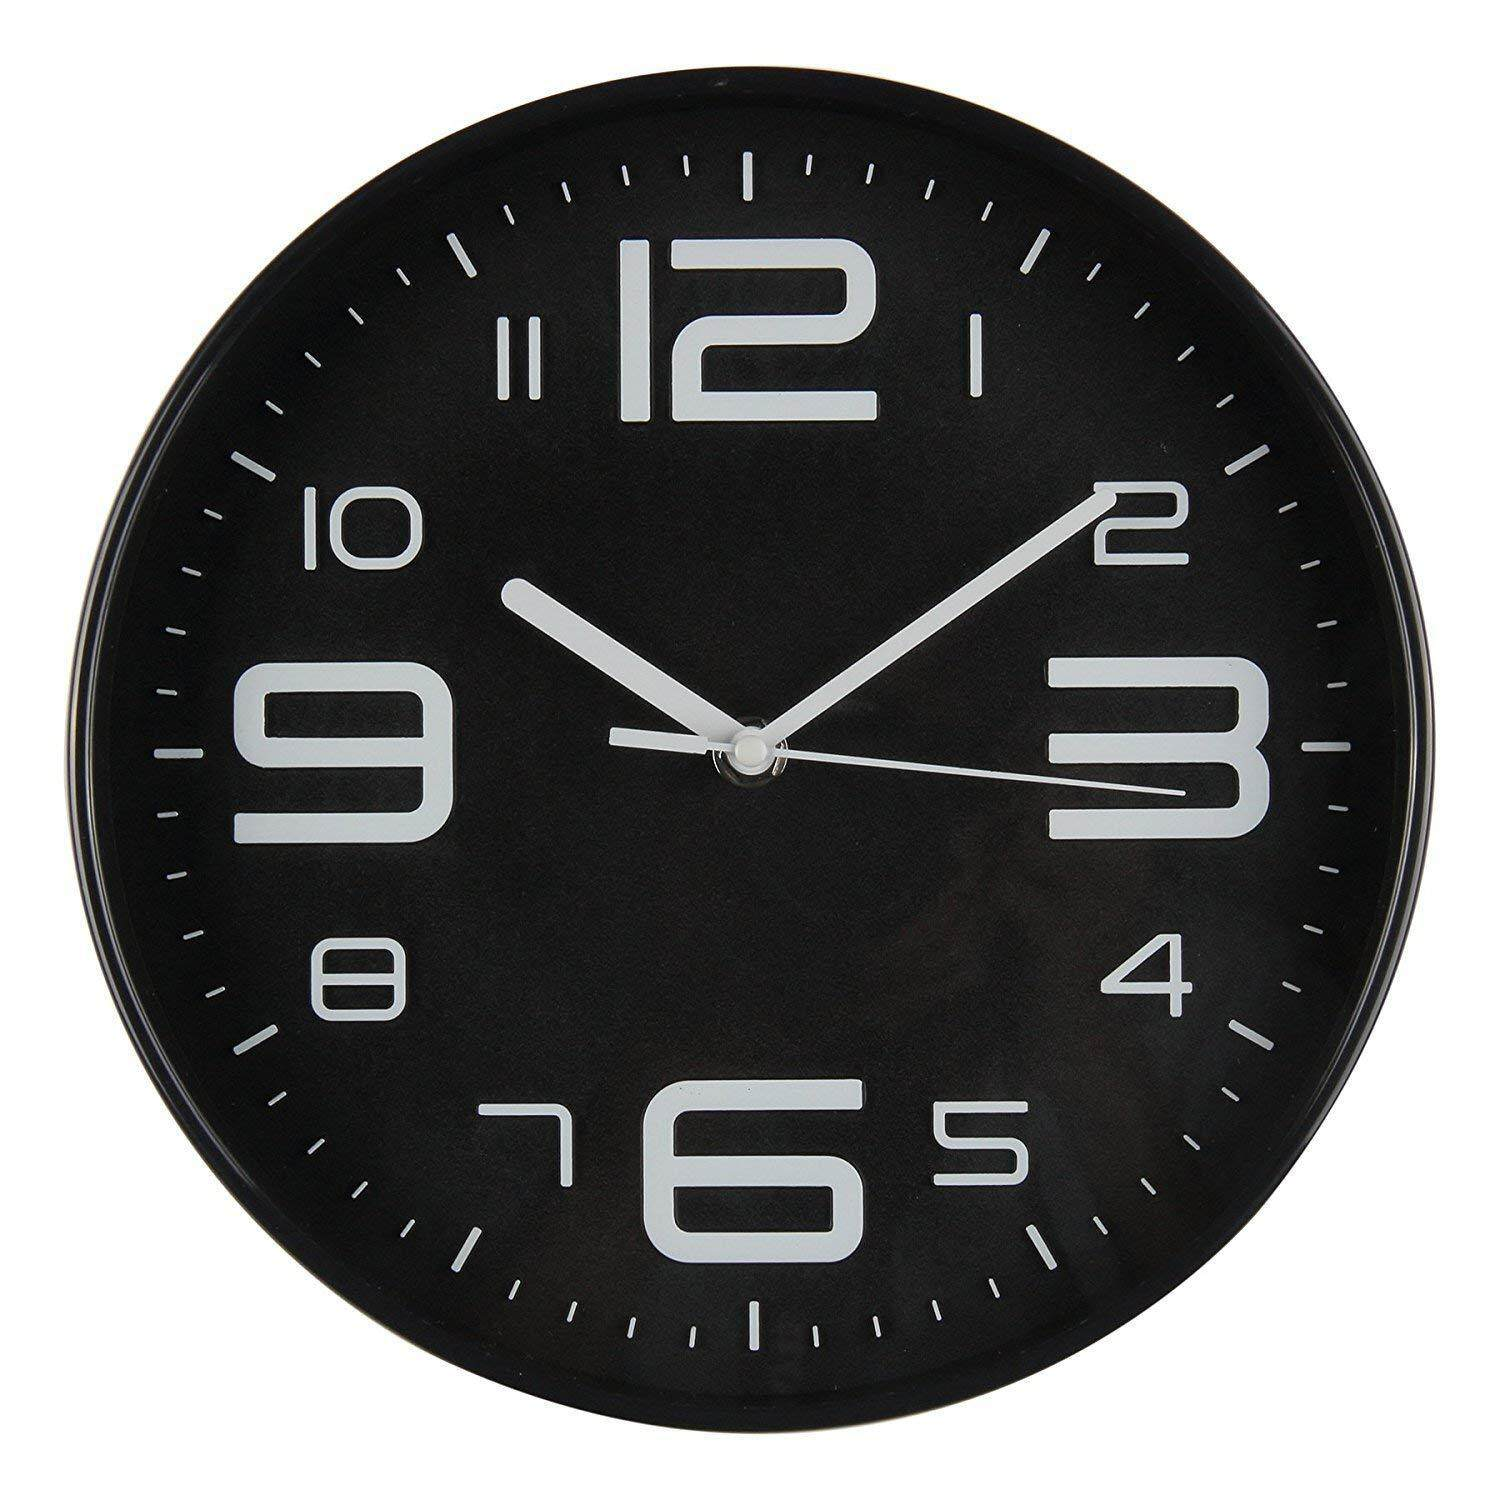 Indoor Big 3D Number Silent Wall Clock Quiet Sweep Movement Wall Clocks Battery Operated 10 Inch Black Profile Free Shipping